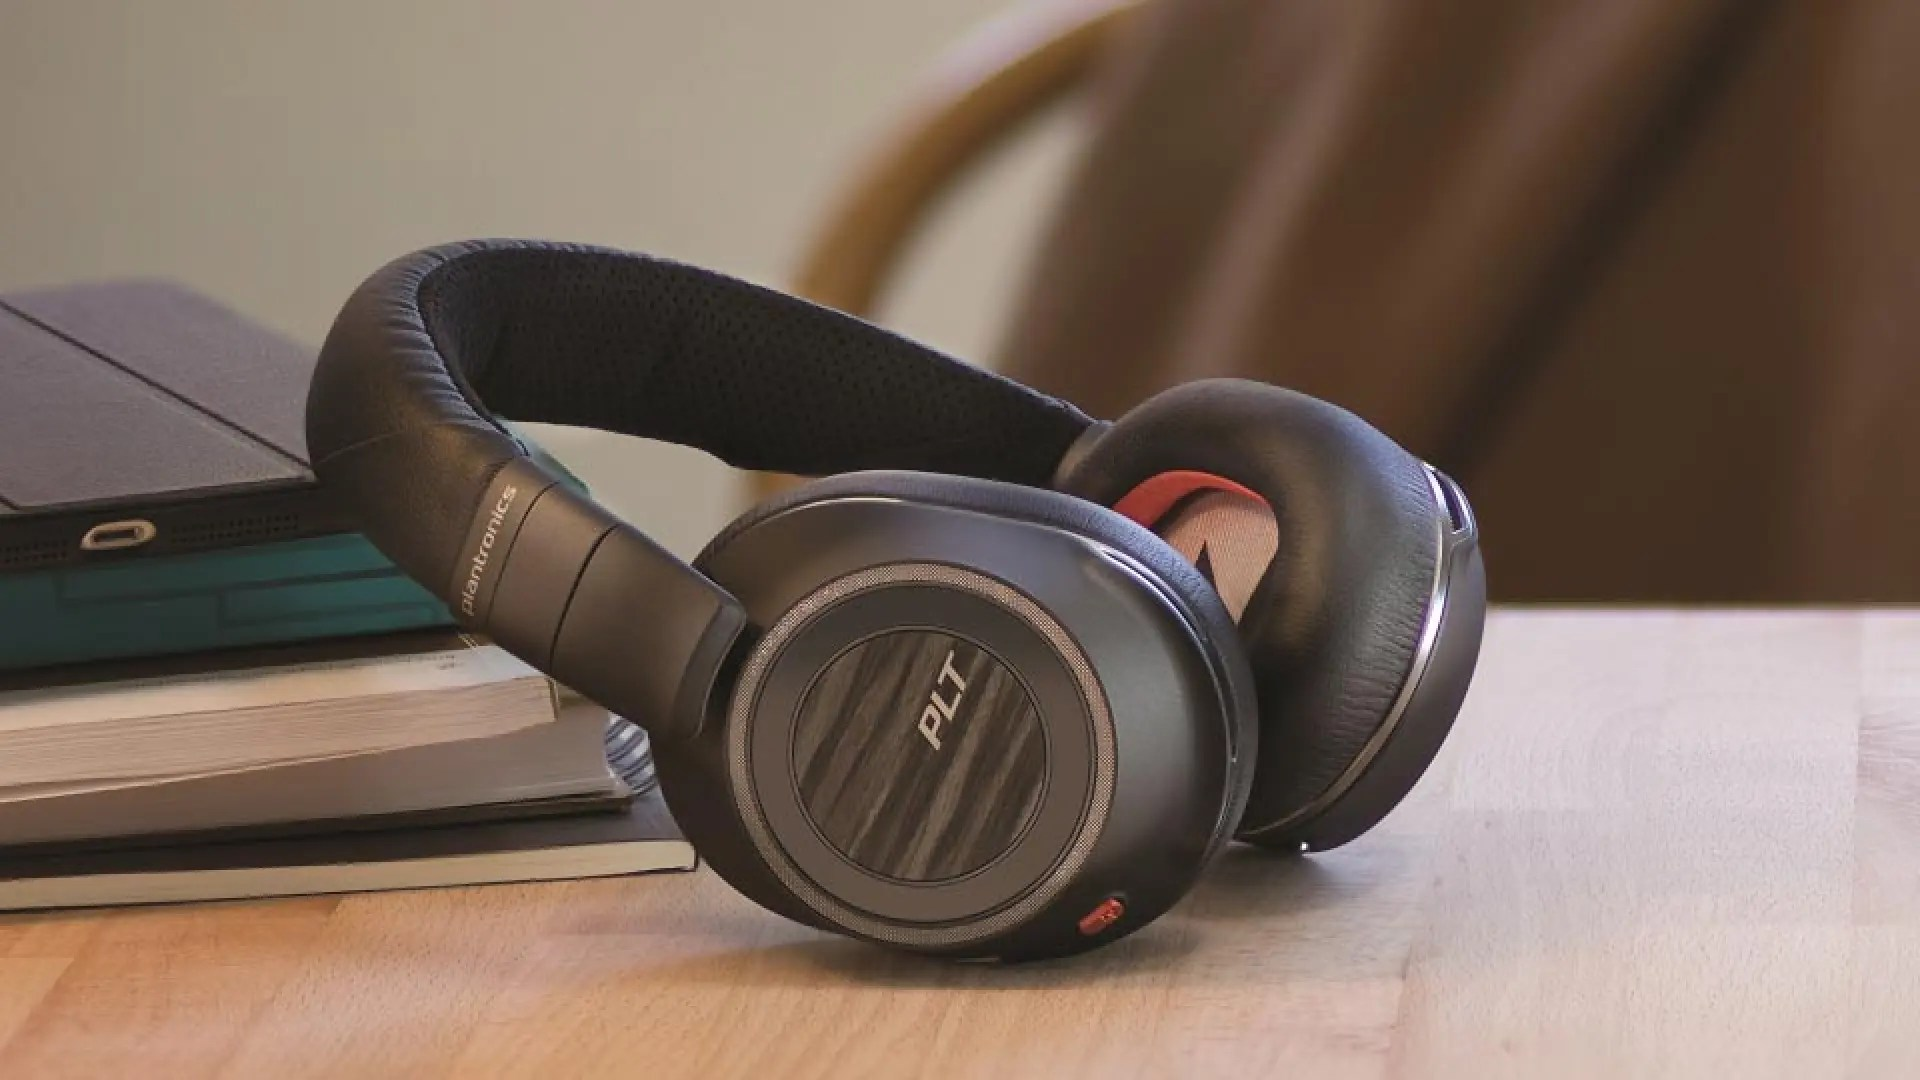 hight resolution of plantronics voyager 8200 uc headphones review great sound on the go or in the office review geek